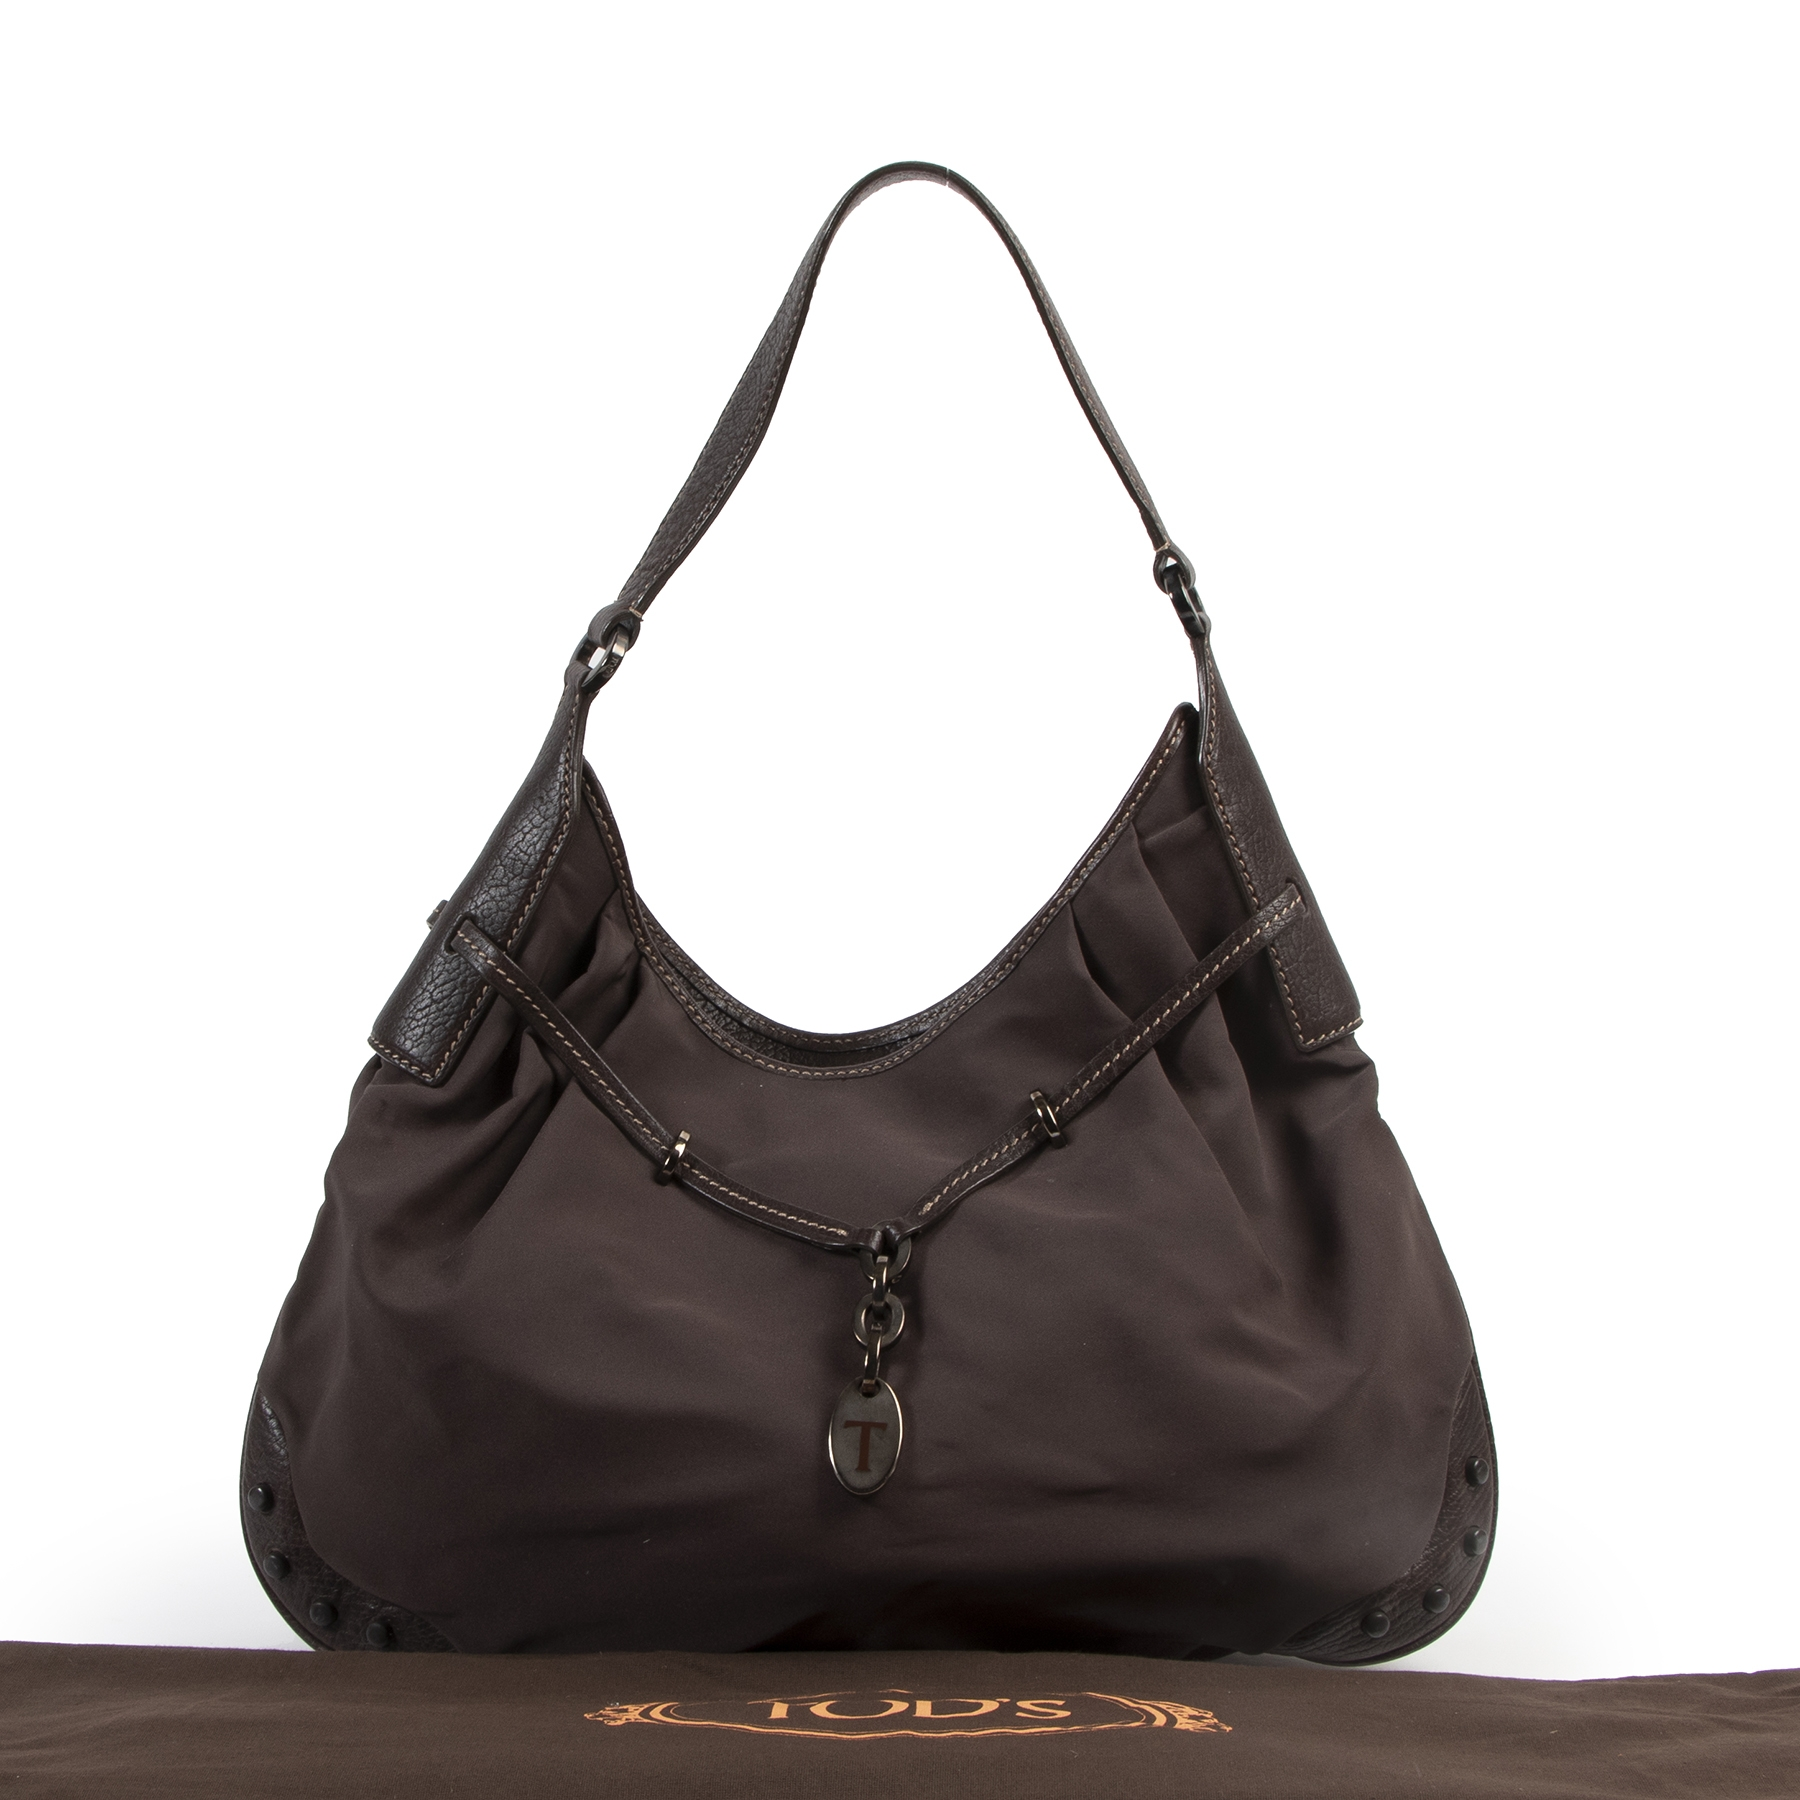 Tod's Brown Nylon and Leather Shoulder Bag pour le meilleur prix chez Labellov à Anvers